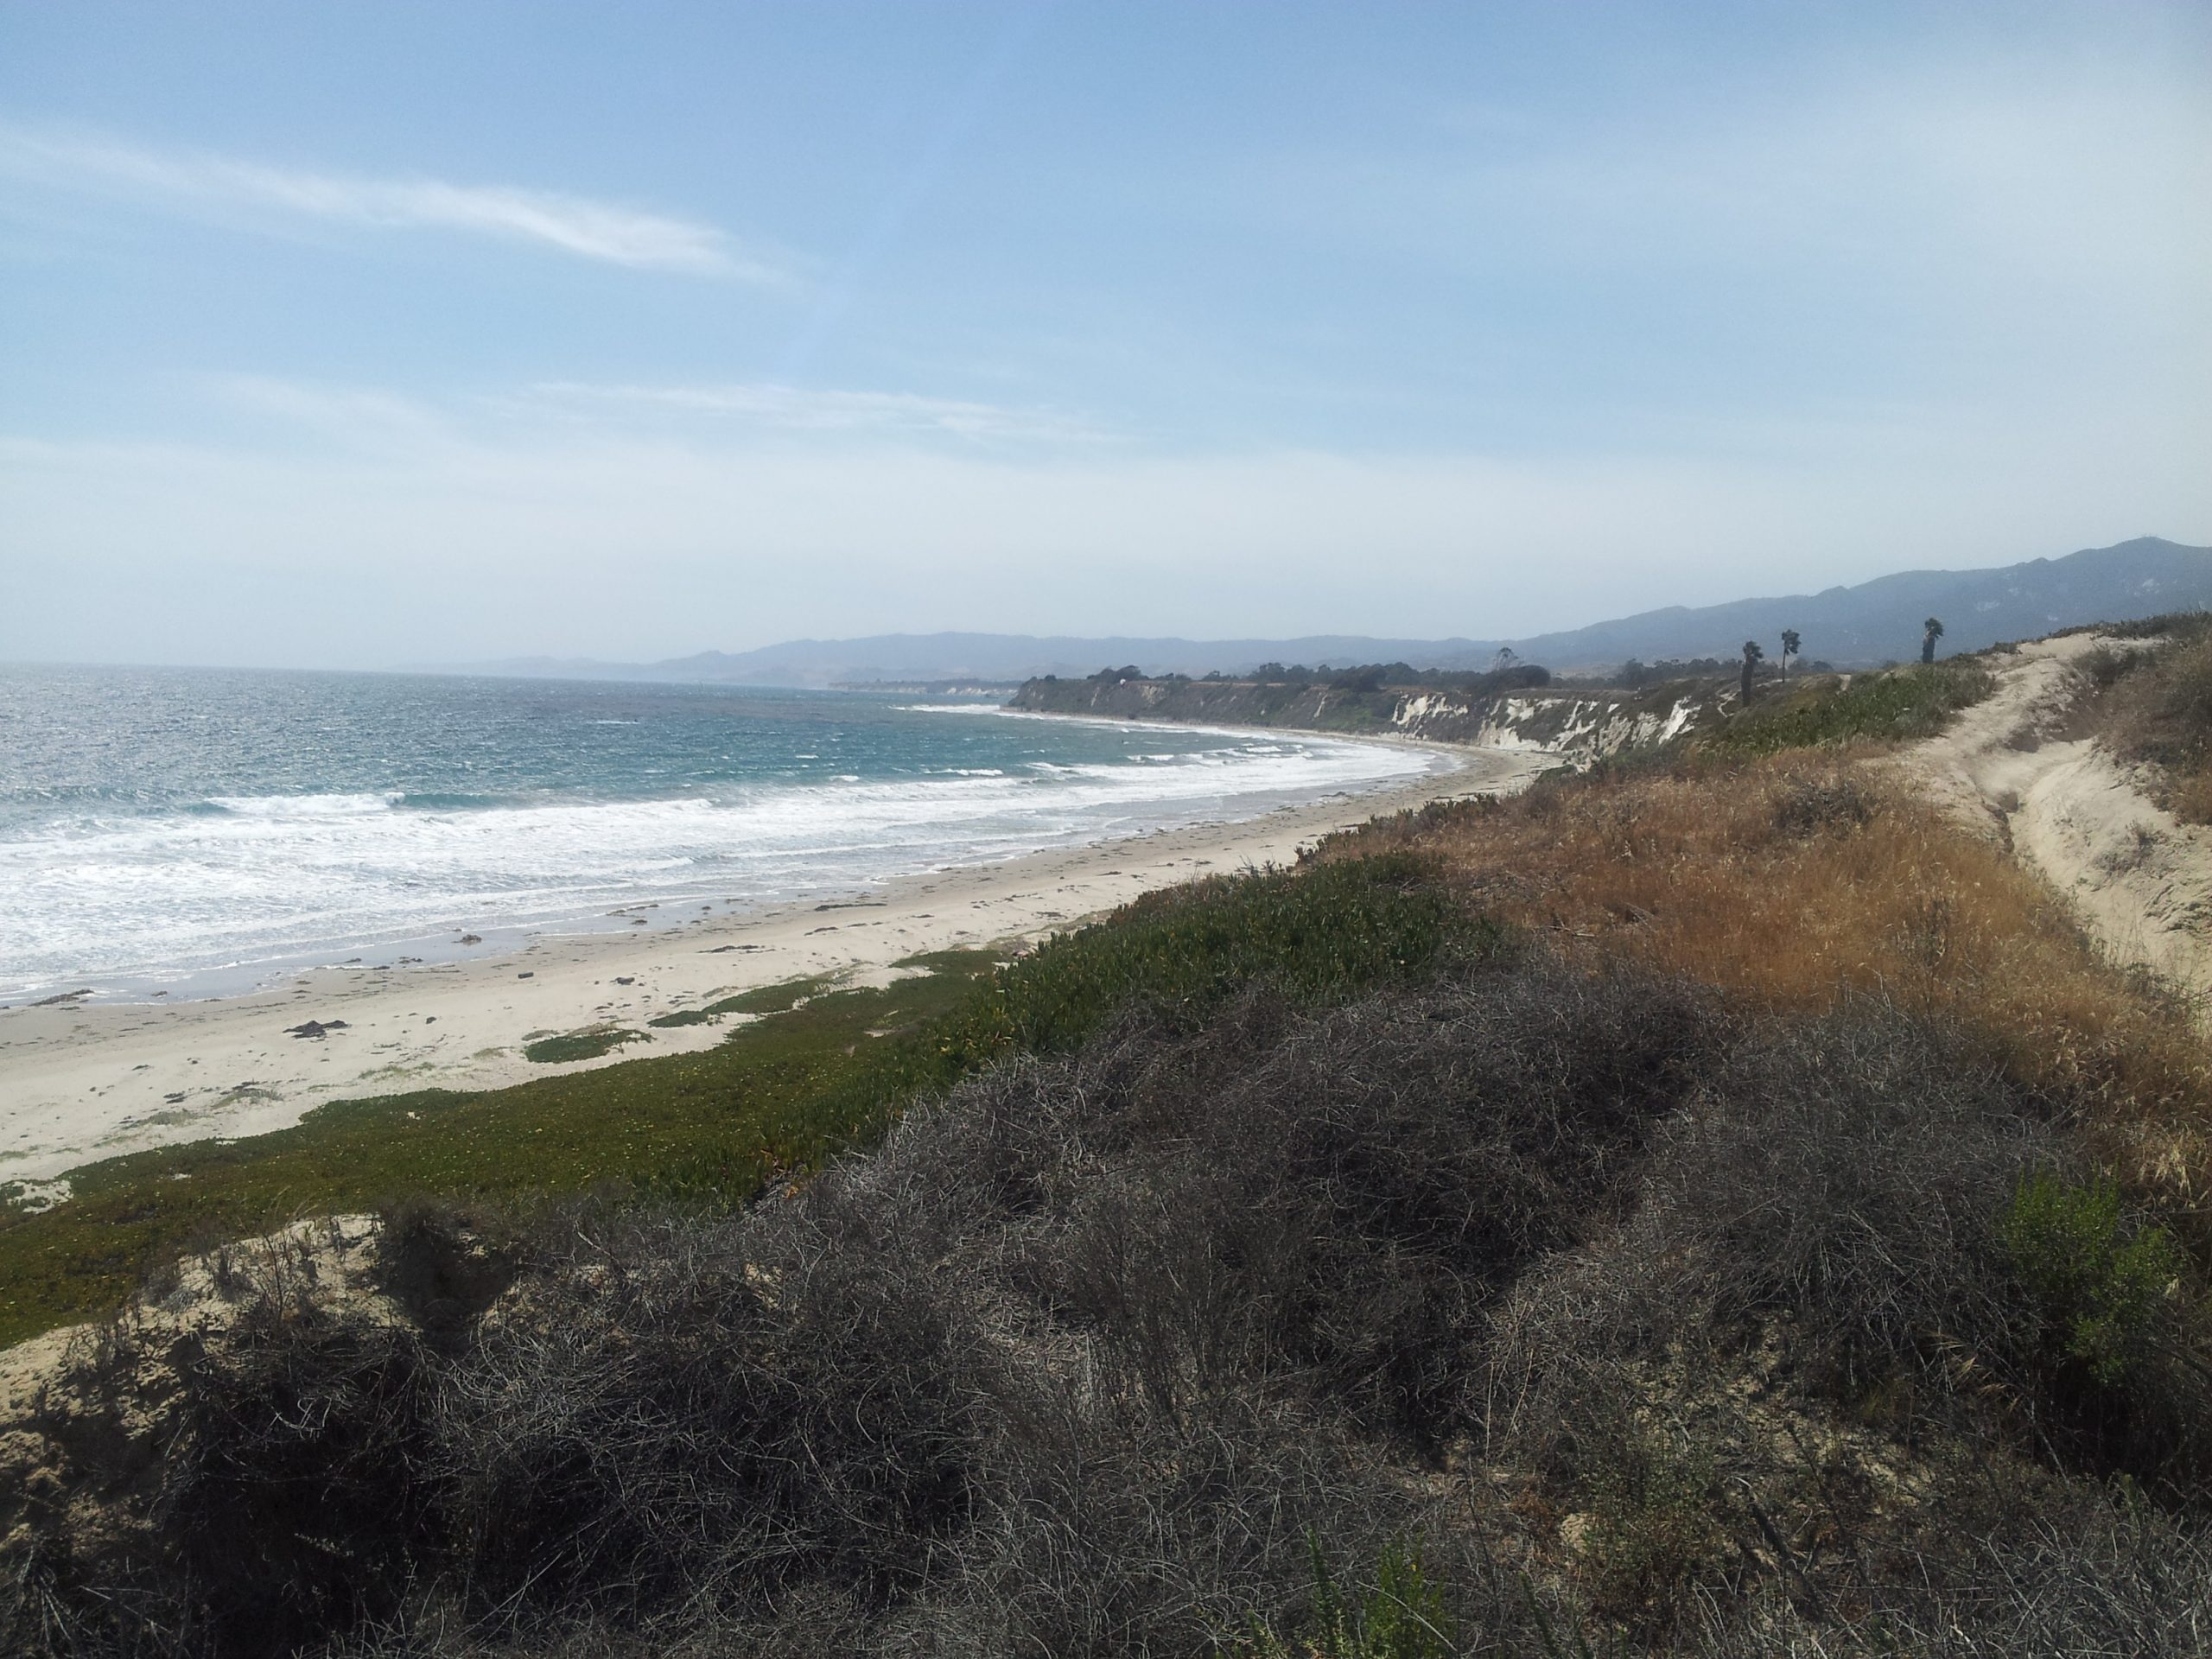 Follow DP and stay on the cliffs to head toward the Goleta Monarch Butterfly Reserve.